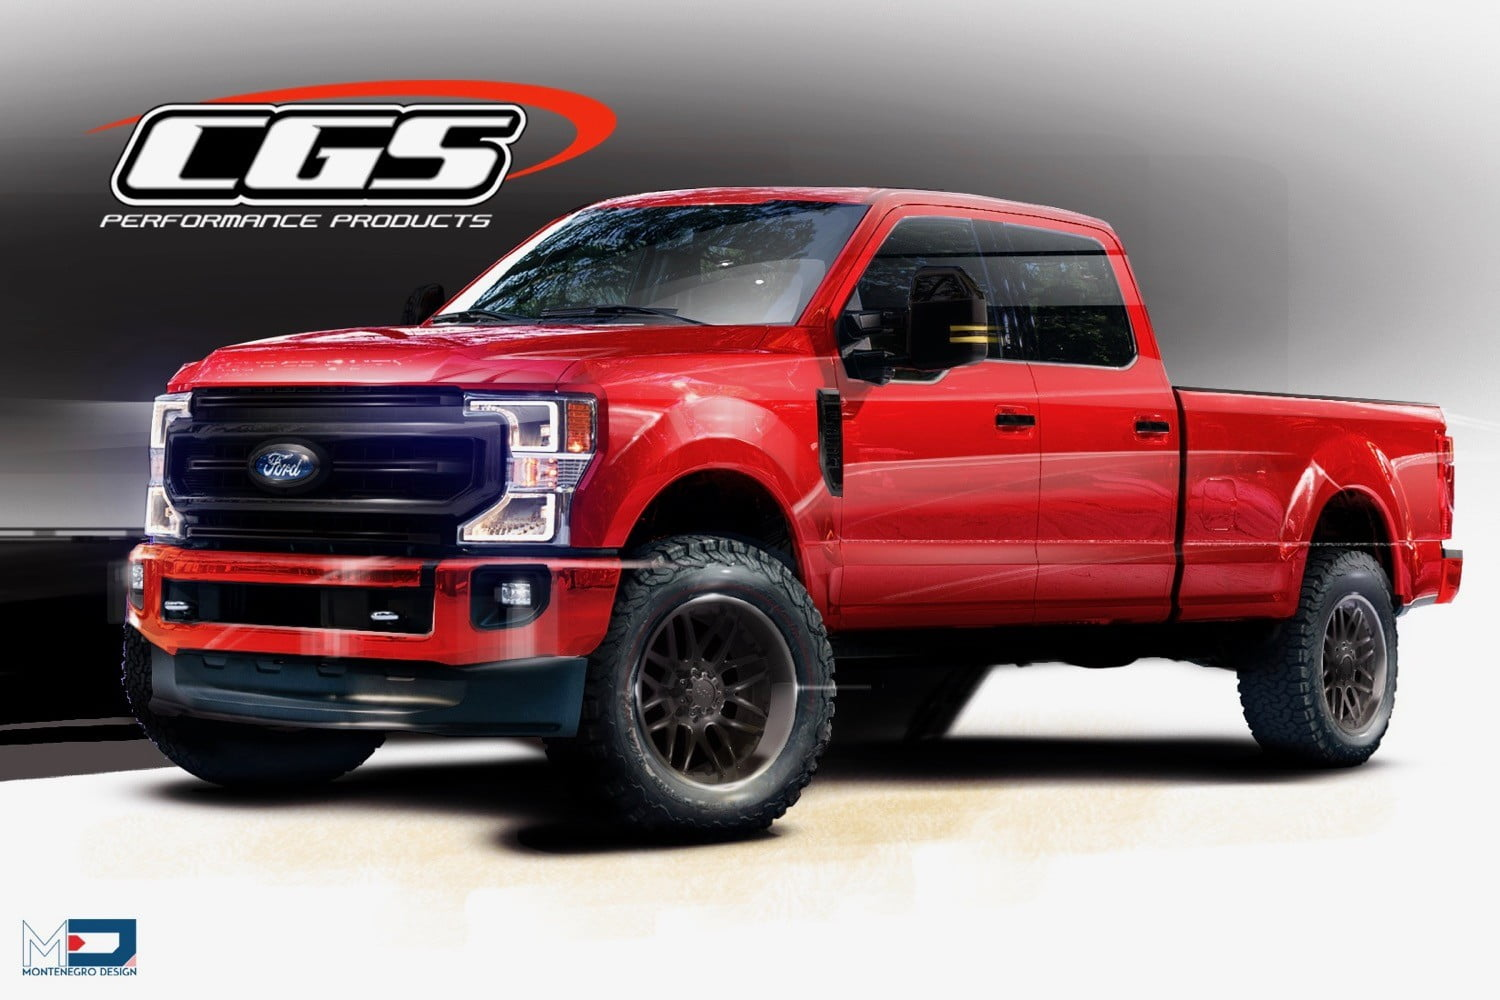 2020 ford f series super duty at sema 2019 cgs performance products 250 tremor crew cab with black appearance package